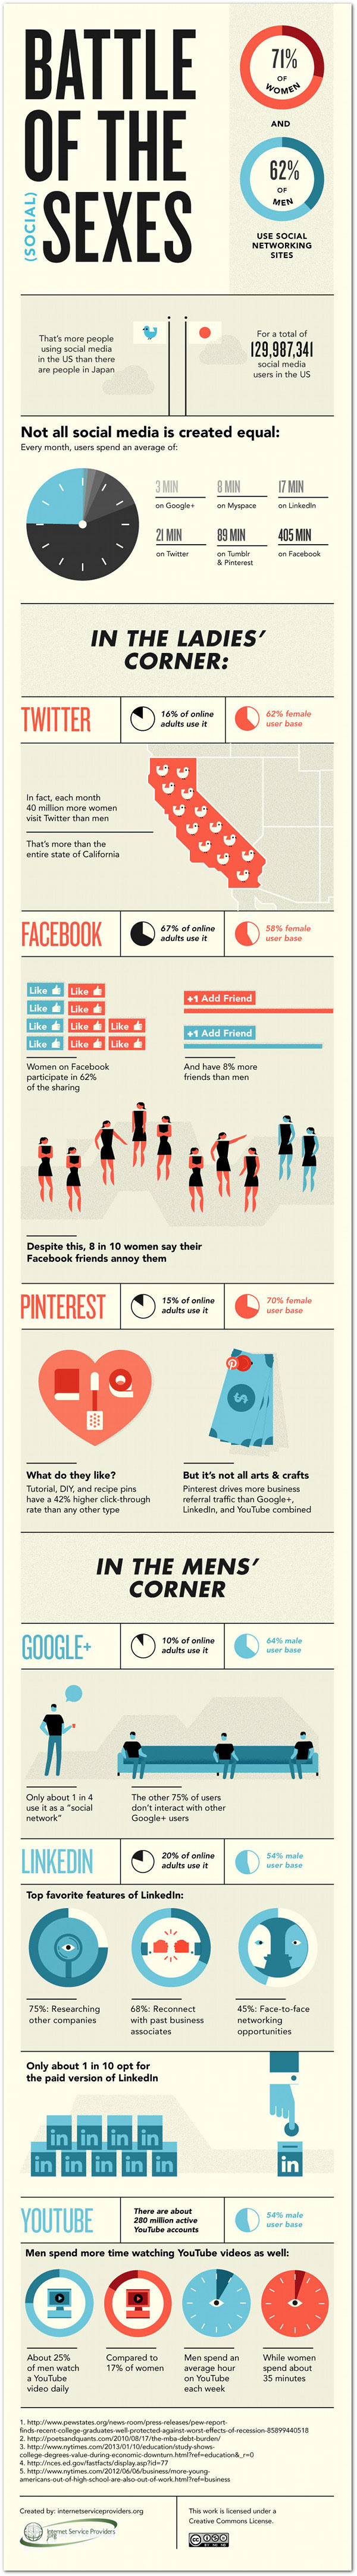 battle-of-the-sexes-social-media